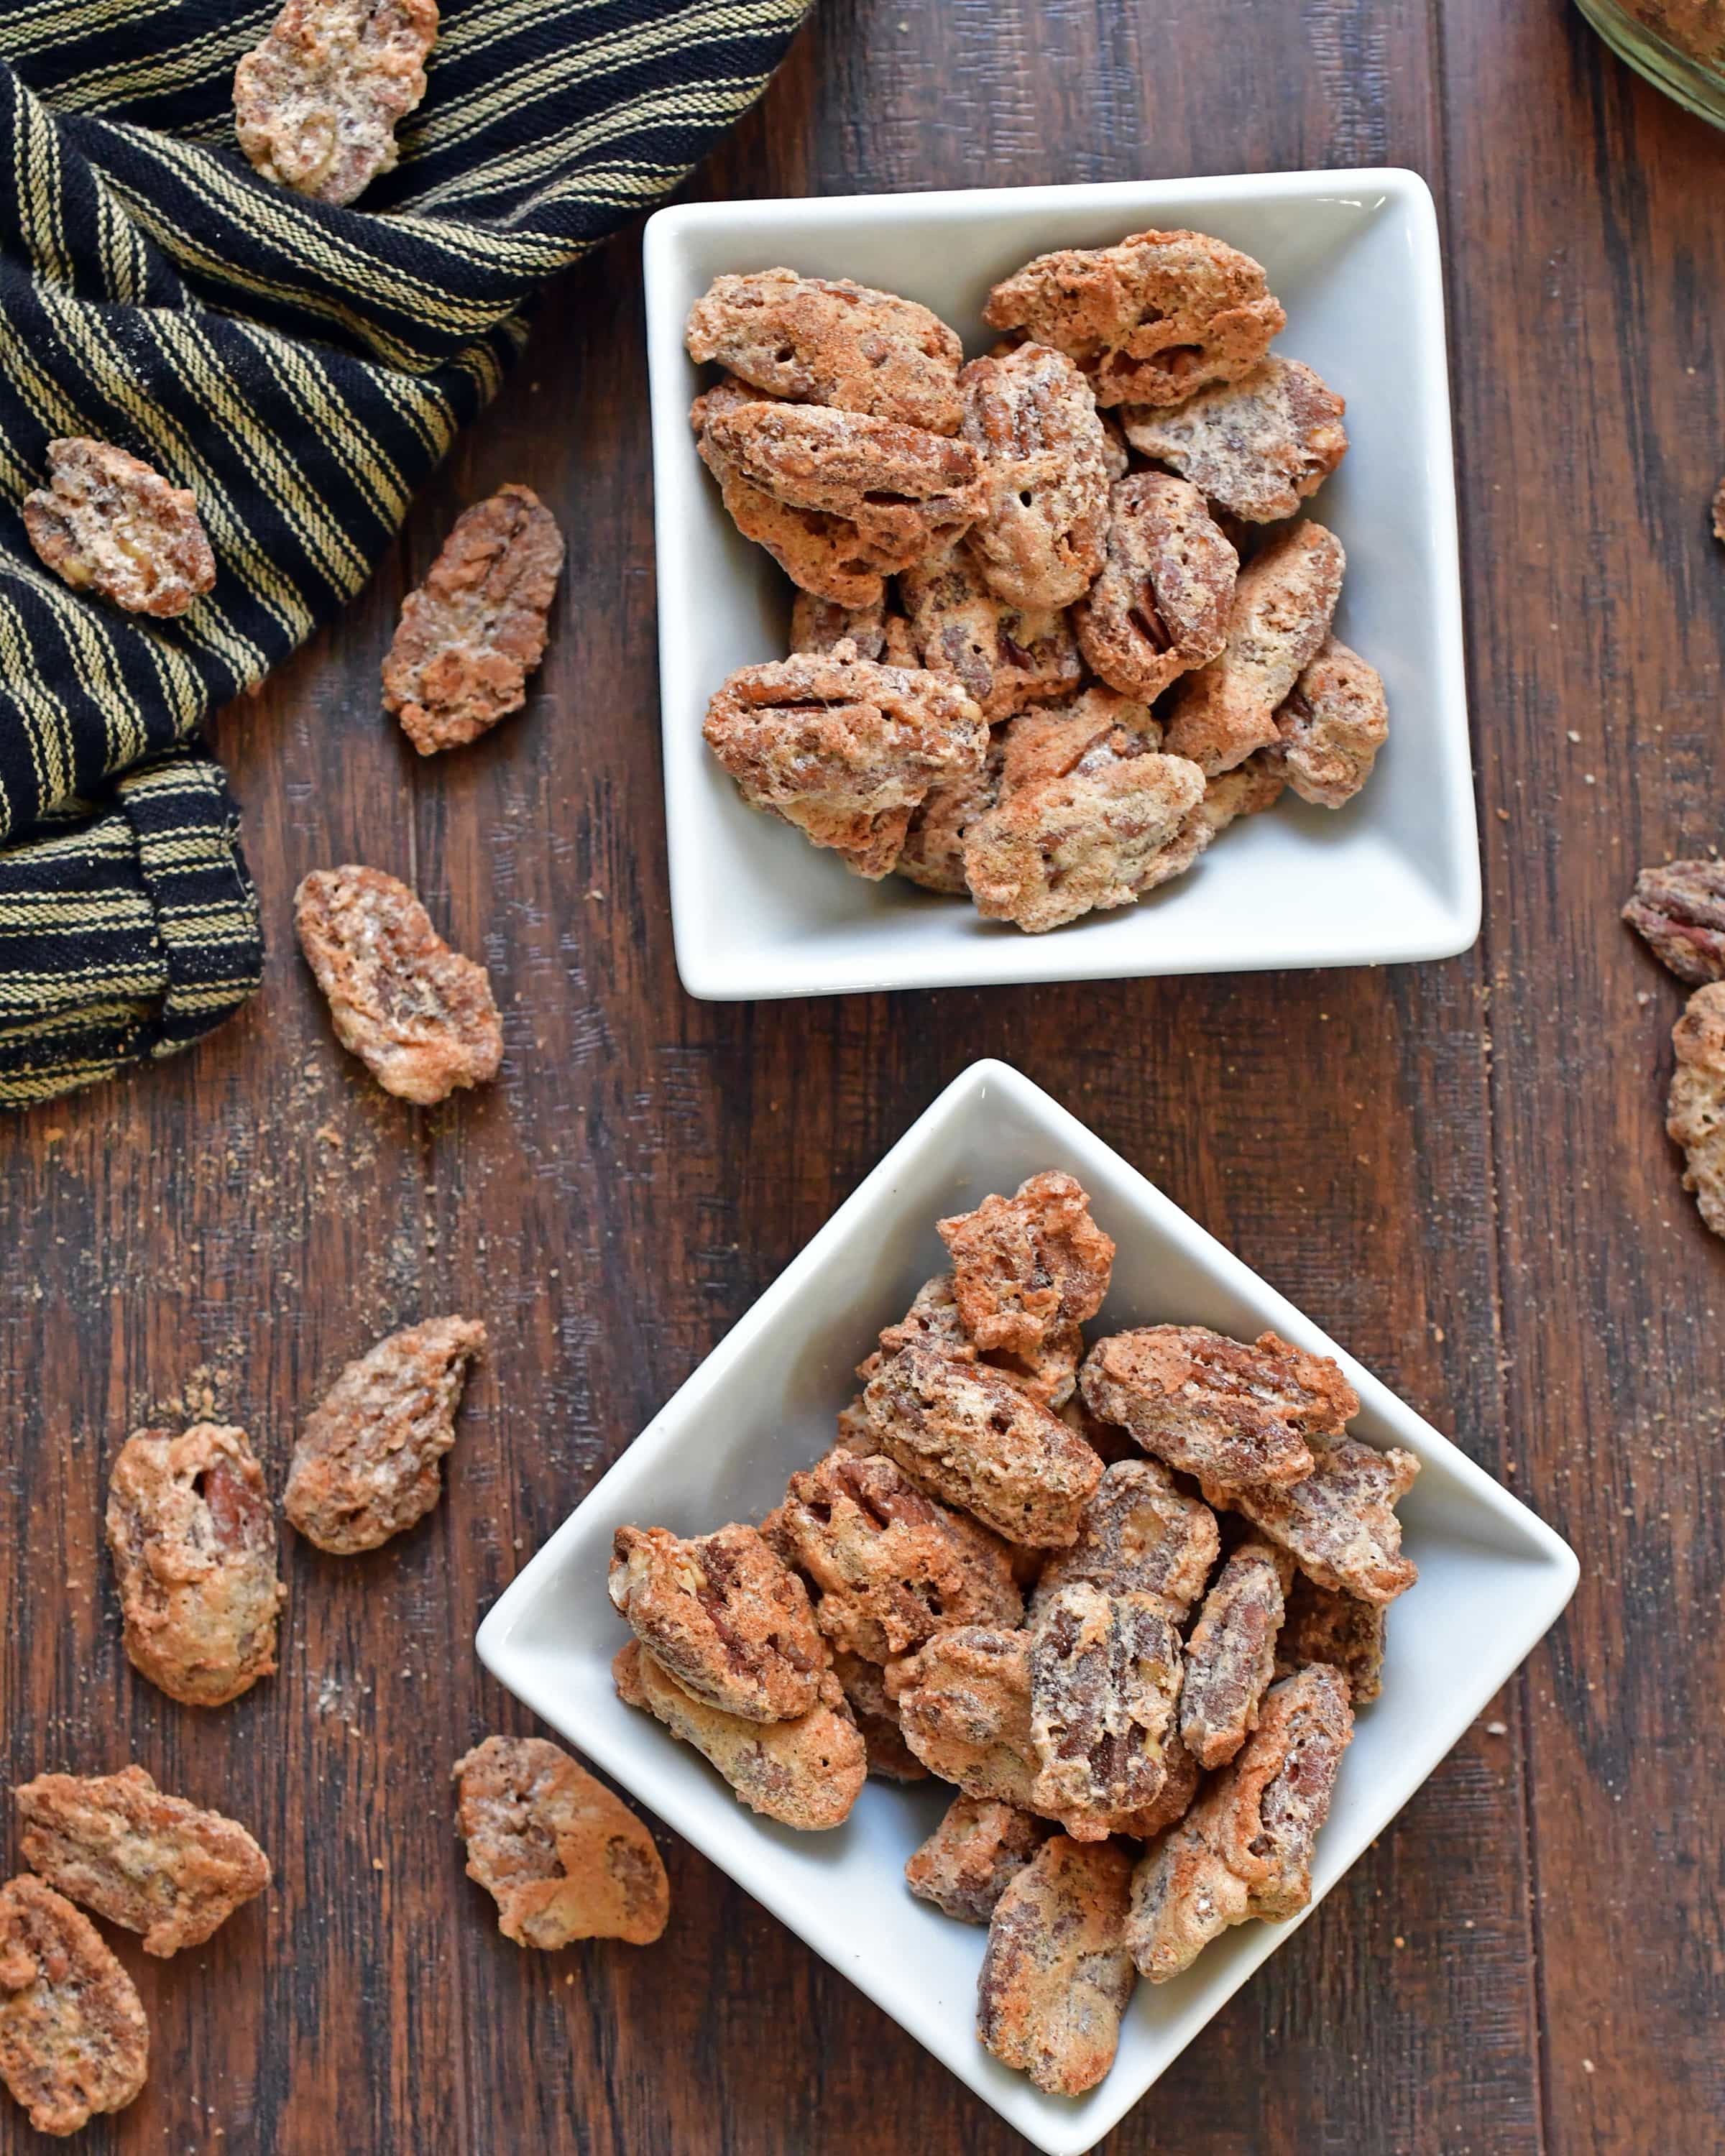 These cinnamon candied pecans are simple to make; full of cinnamon flavor and crunch.